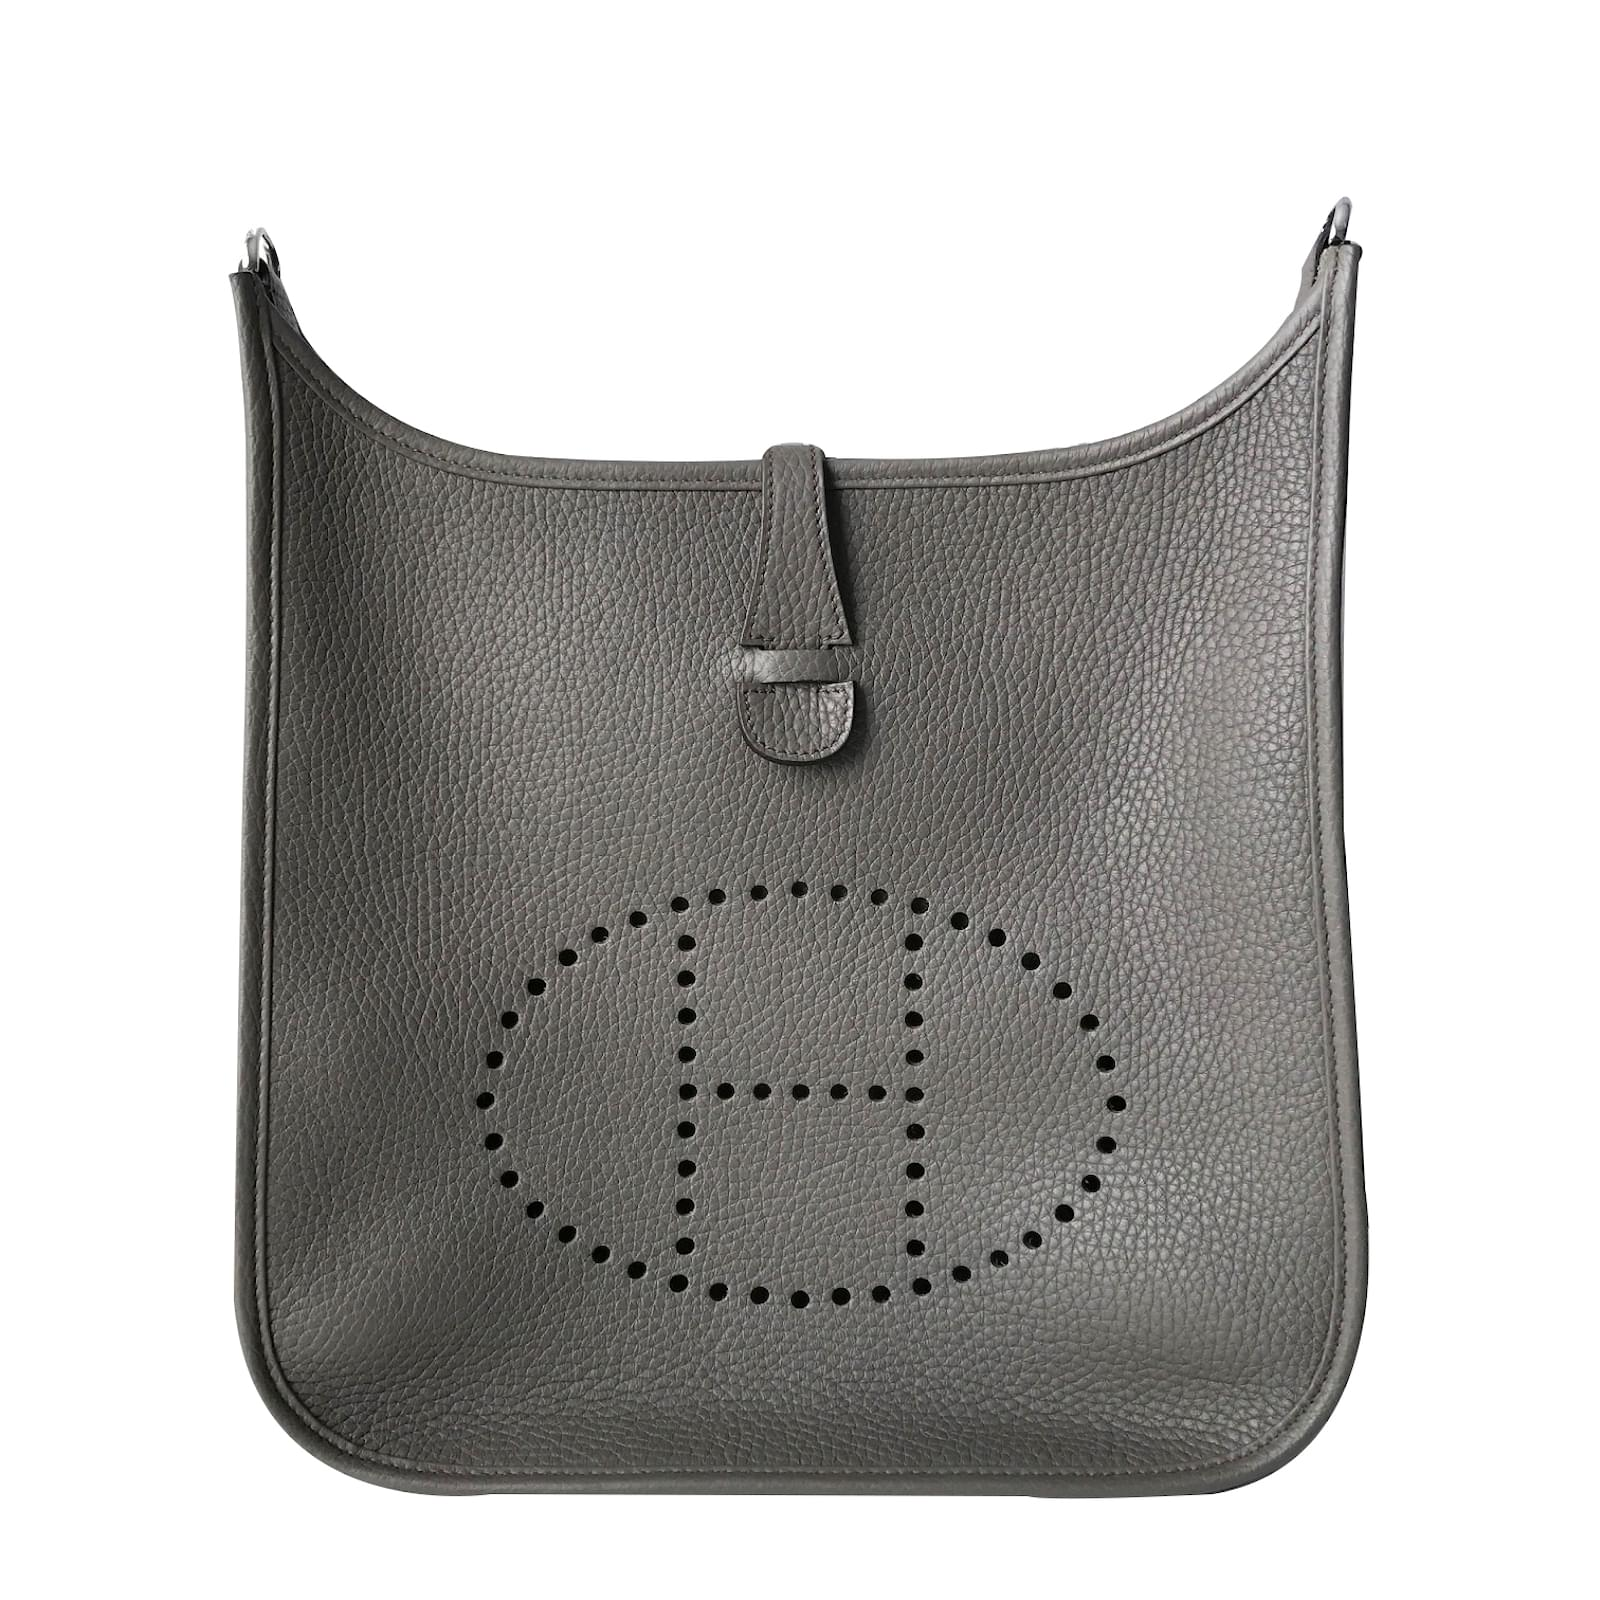 3a62a558be05 ... reduced hermès evelyne 29 handbags leather dark grey ref.26749 f9734  78a59